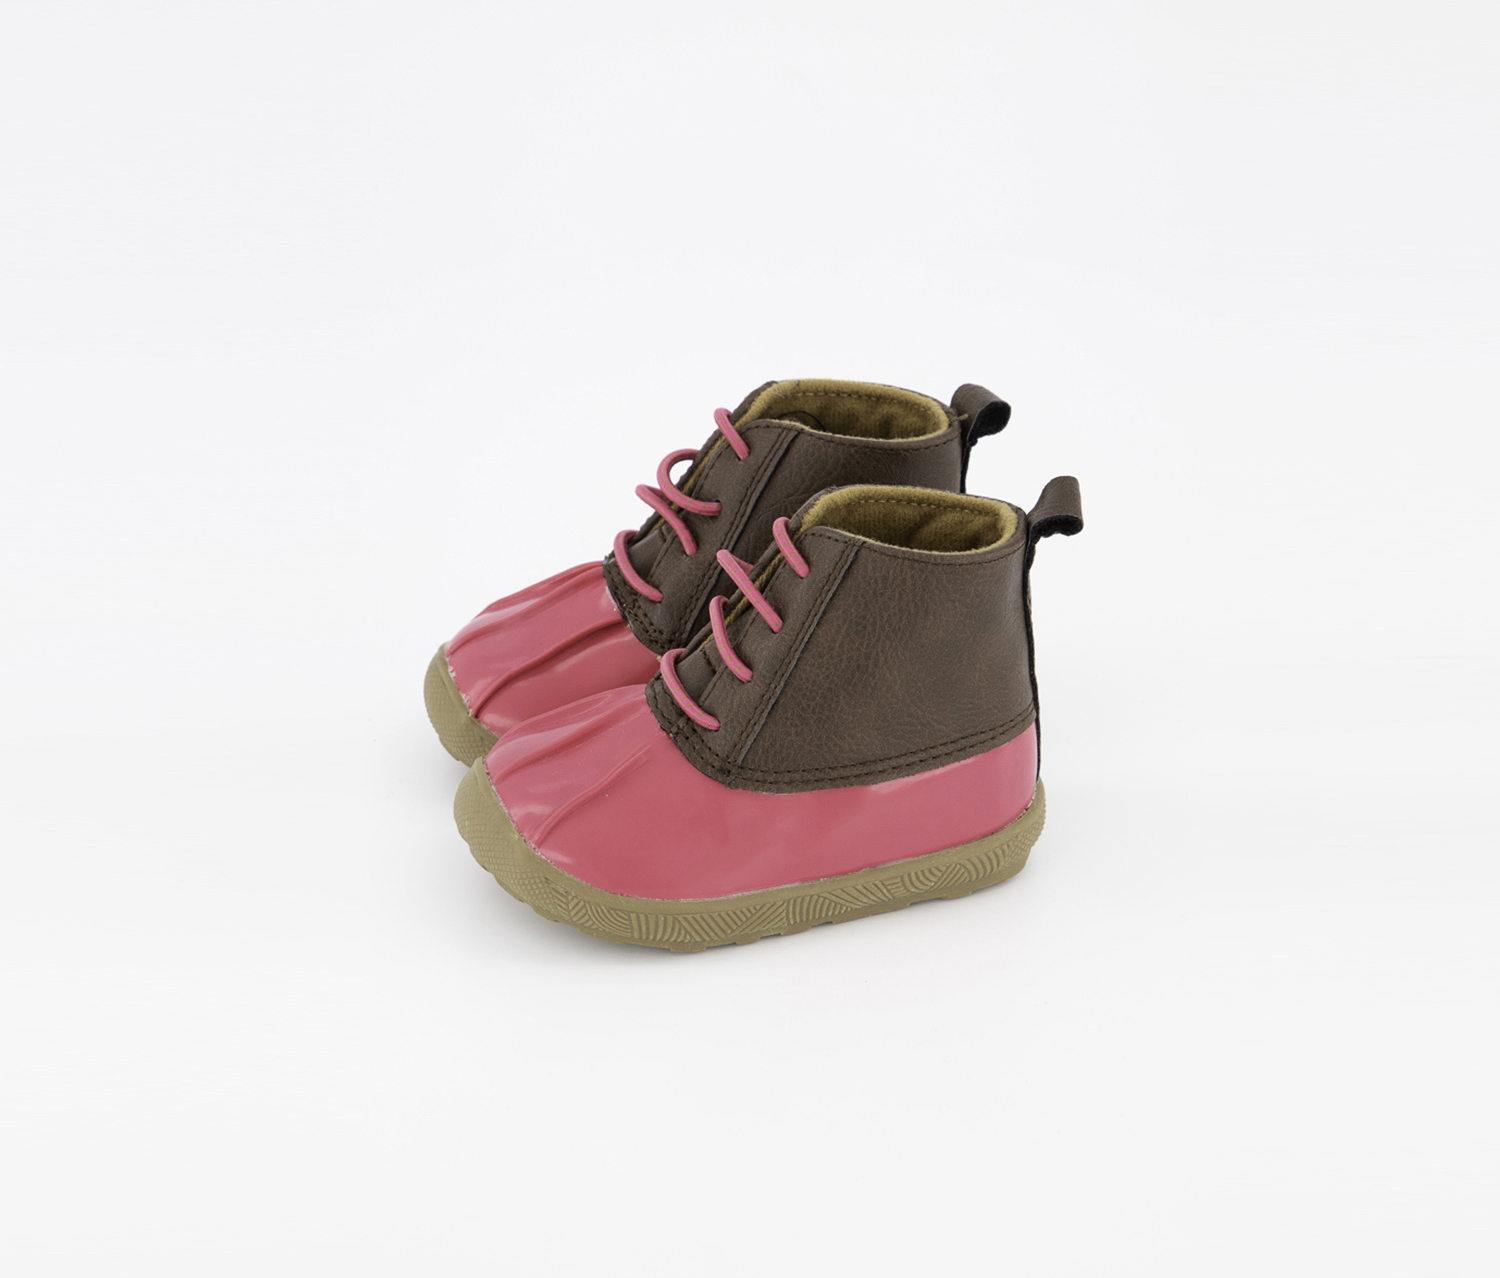 Baby Girl's Duck Boots, Dark Pink